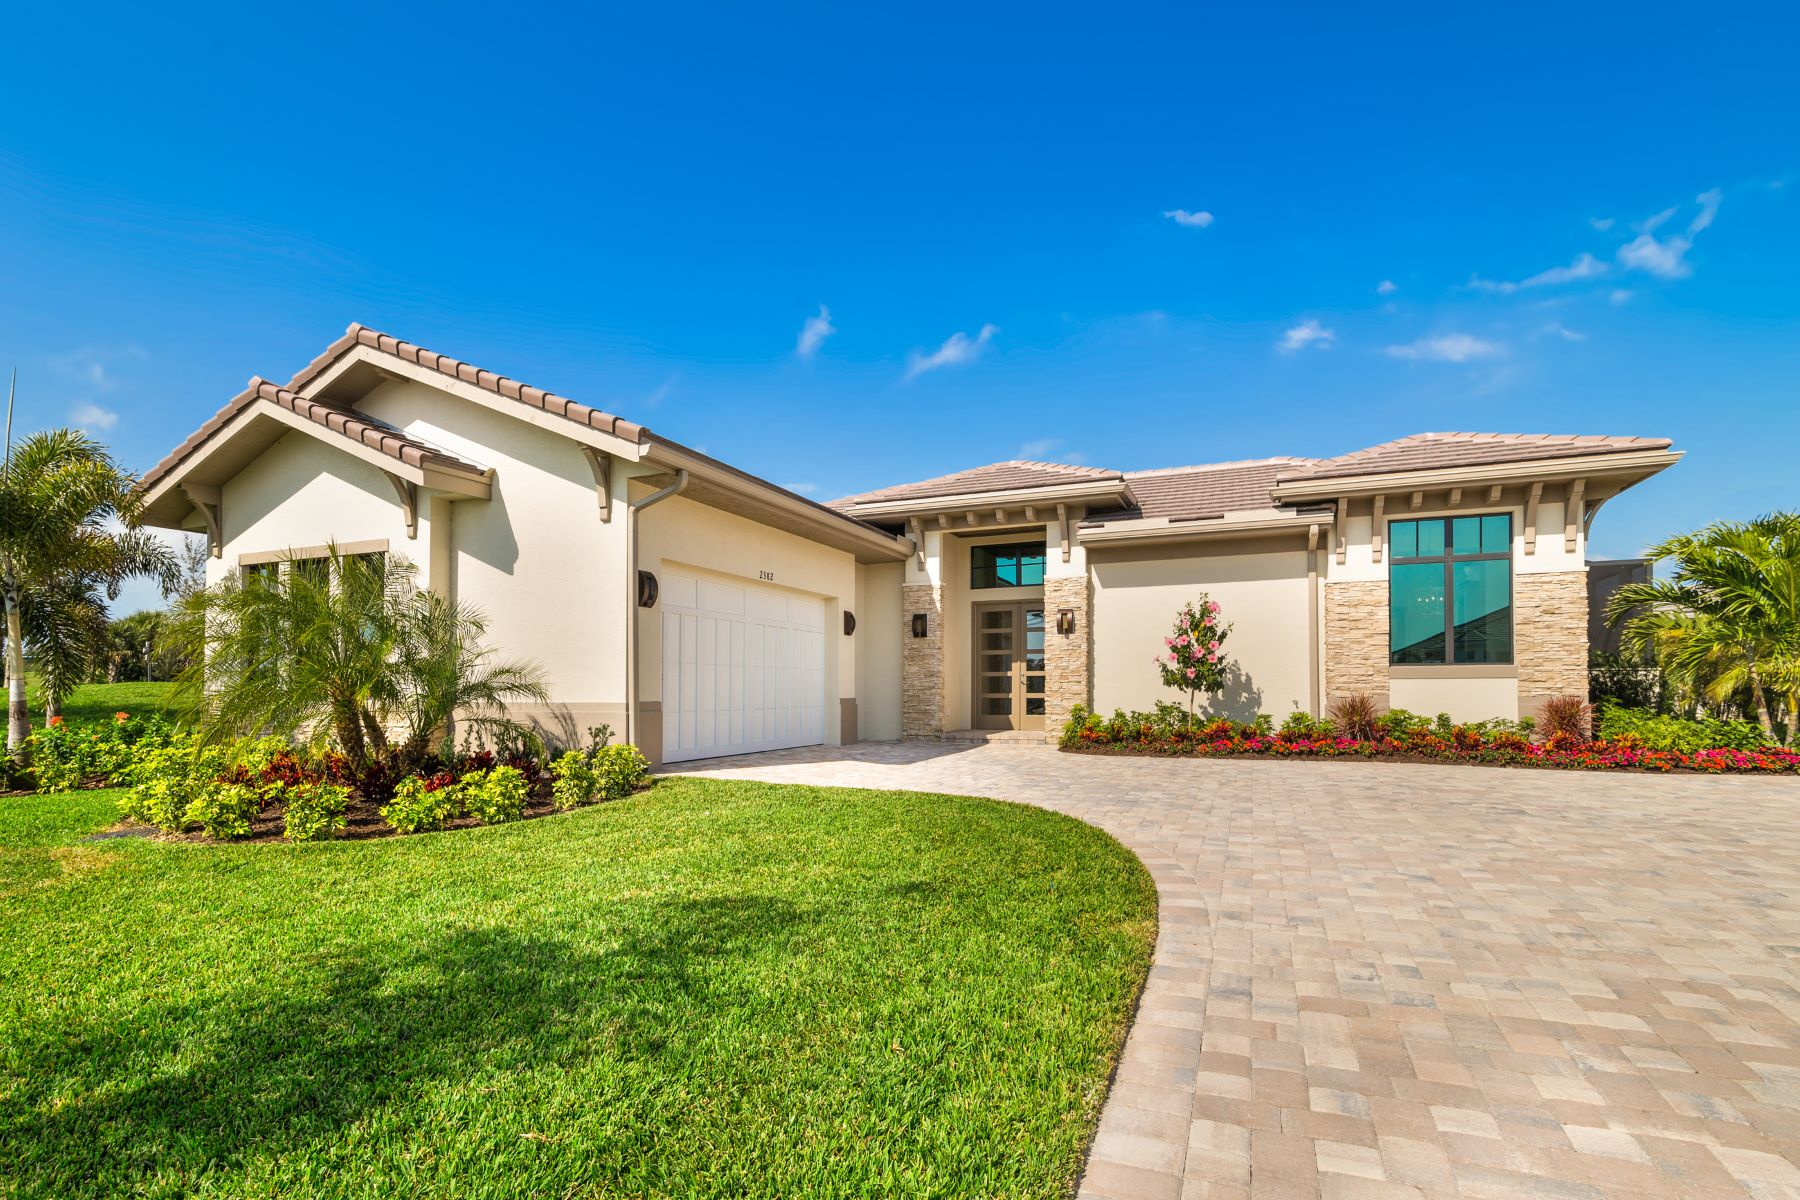 Single Family Homes for Sale at Luxury New Home in the Reserve at Grand Harbor 2348 Grand Harbor Reserve Vero Beach, Florida 32967 United States